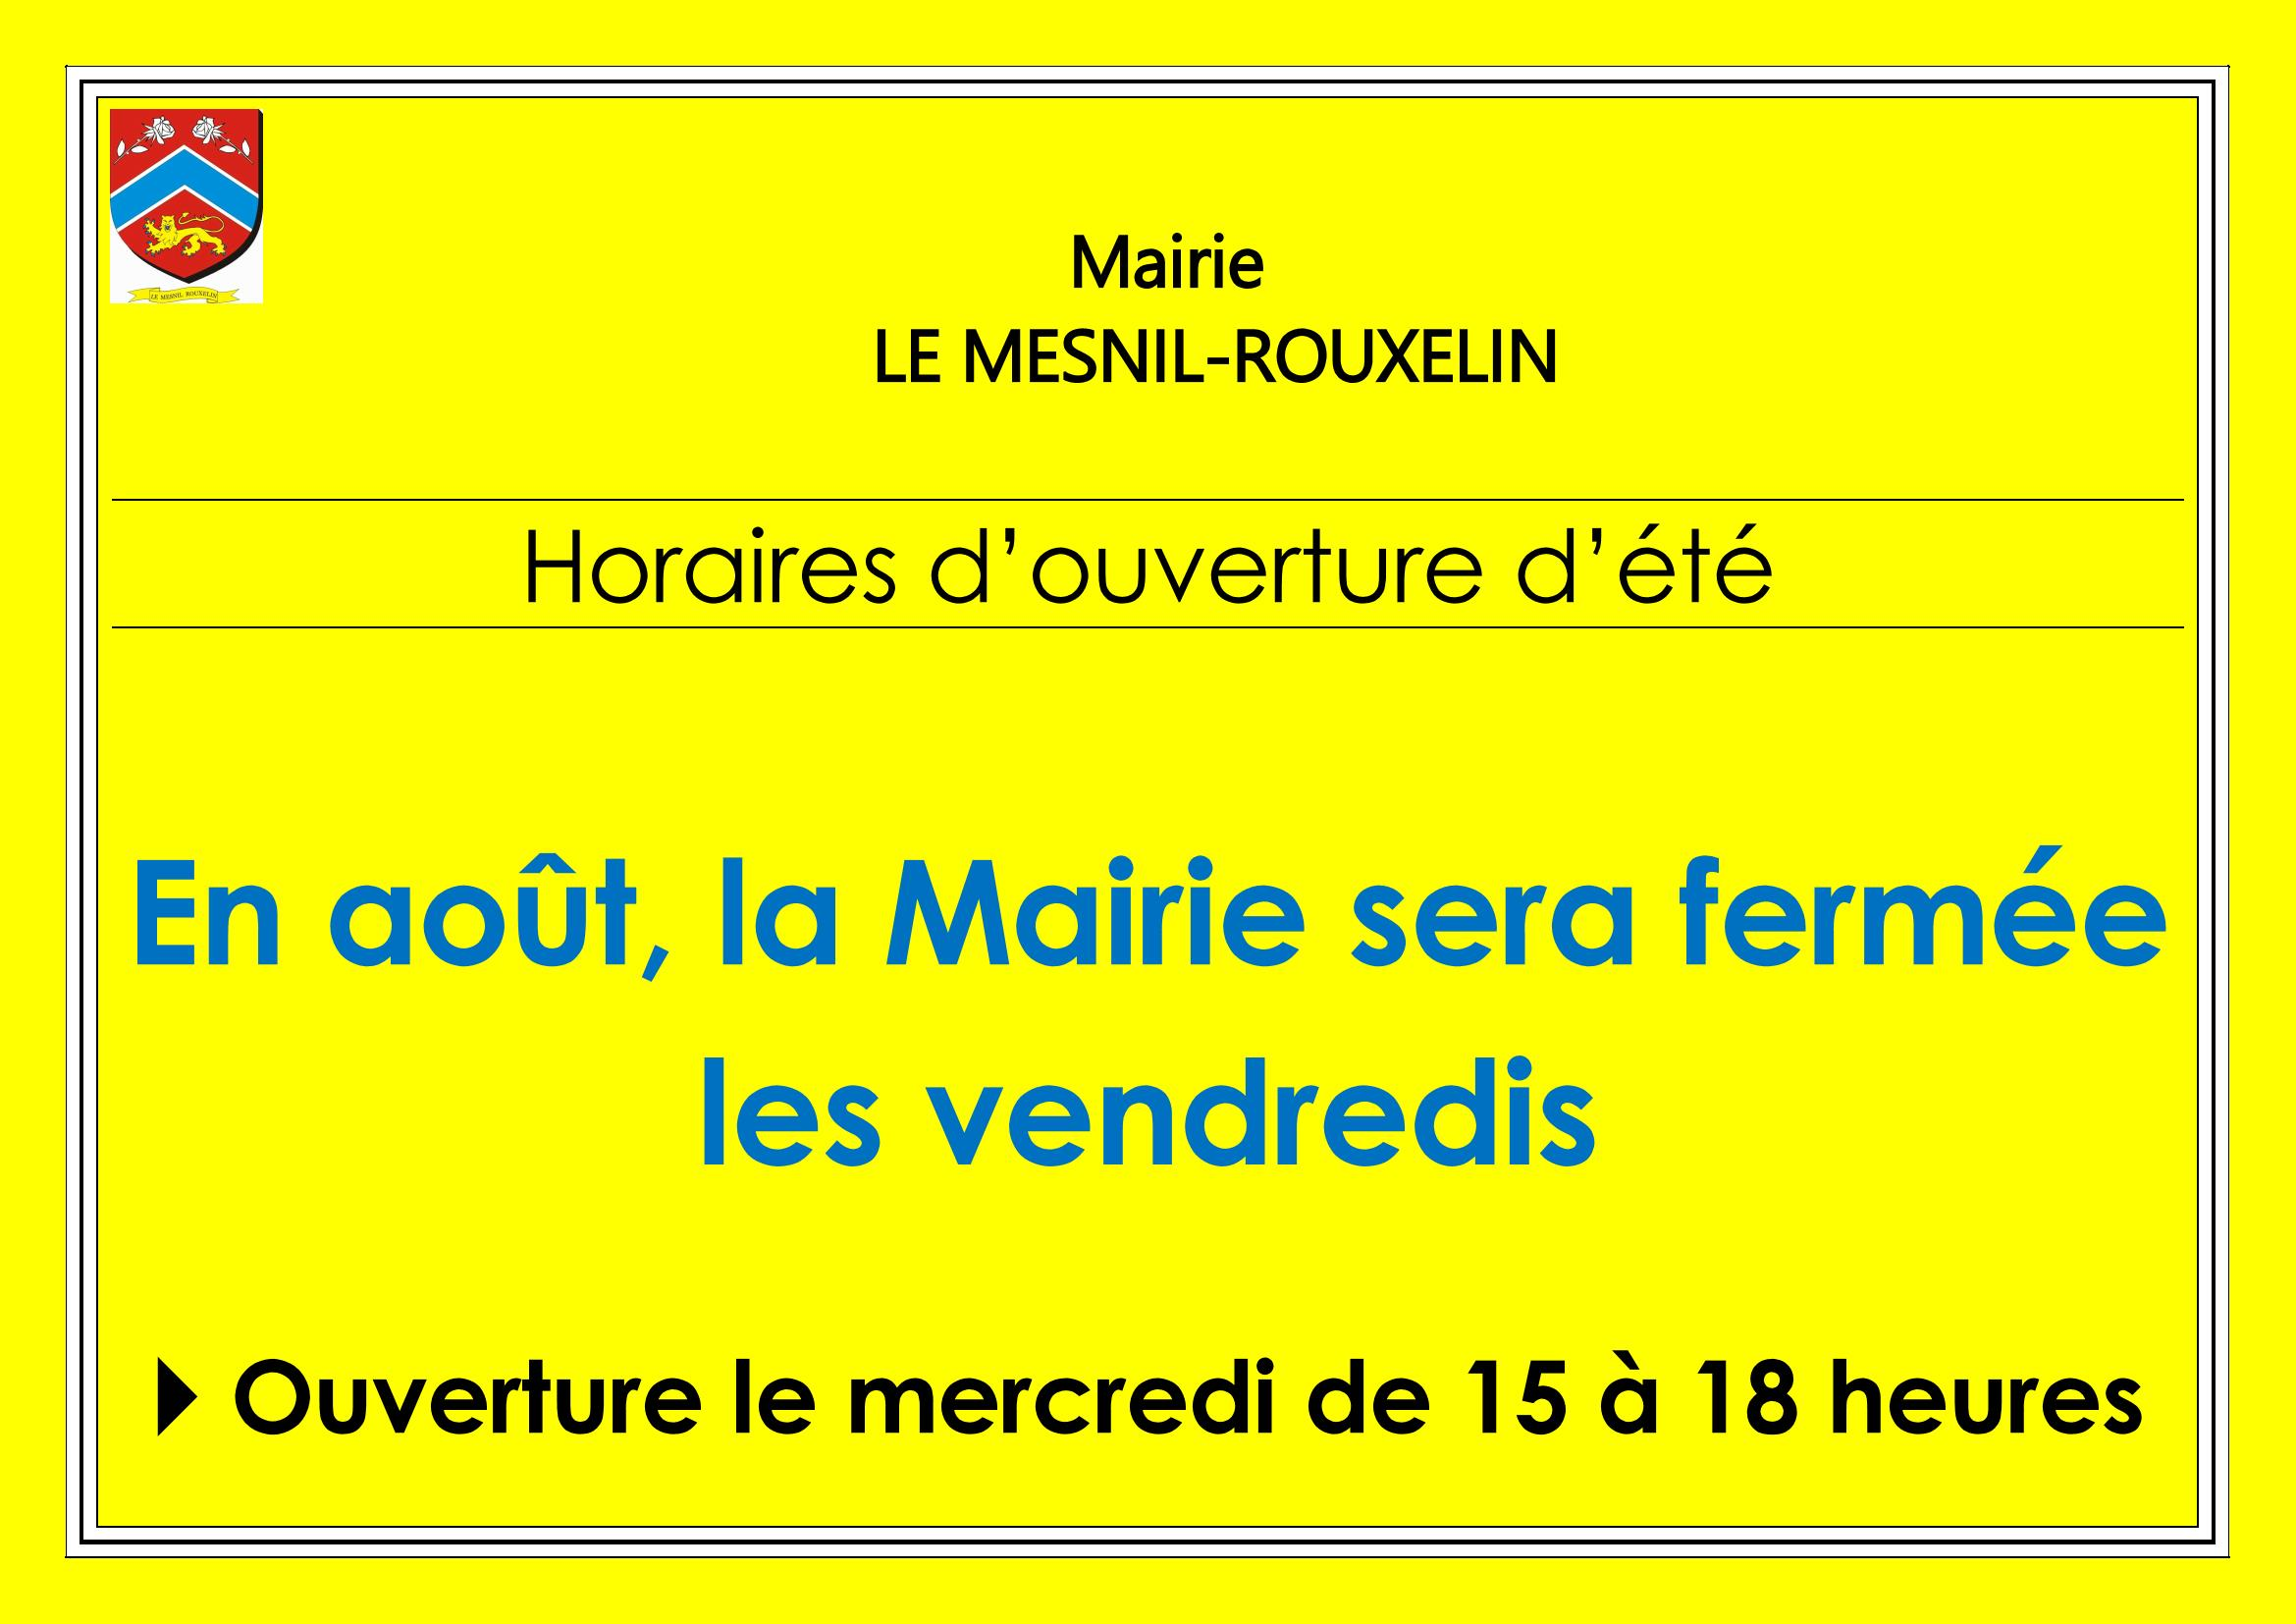 Affichage_horaire_fermeture_aoet_Page_2.jpeg